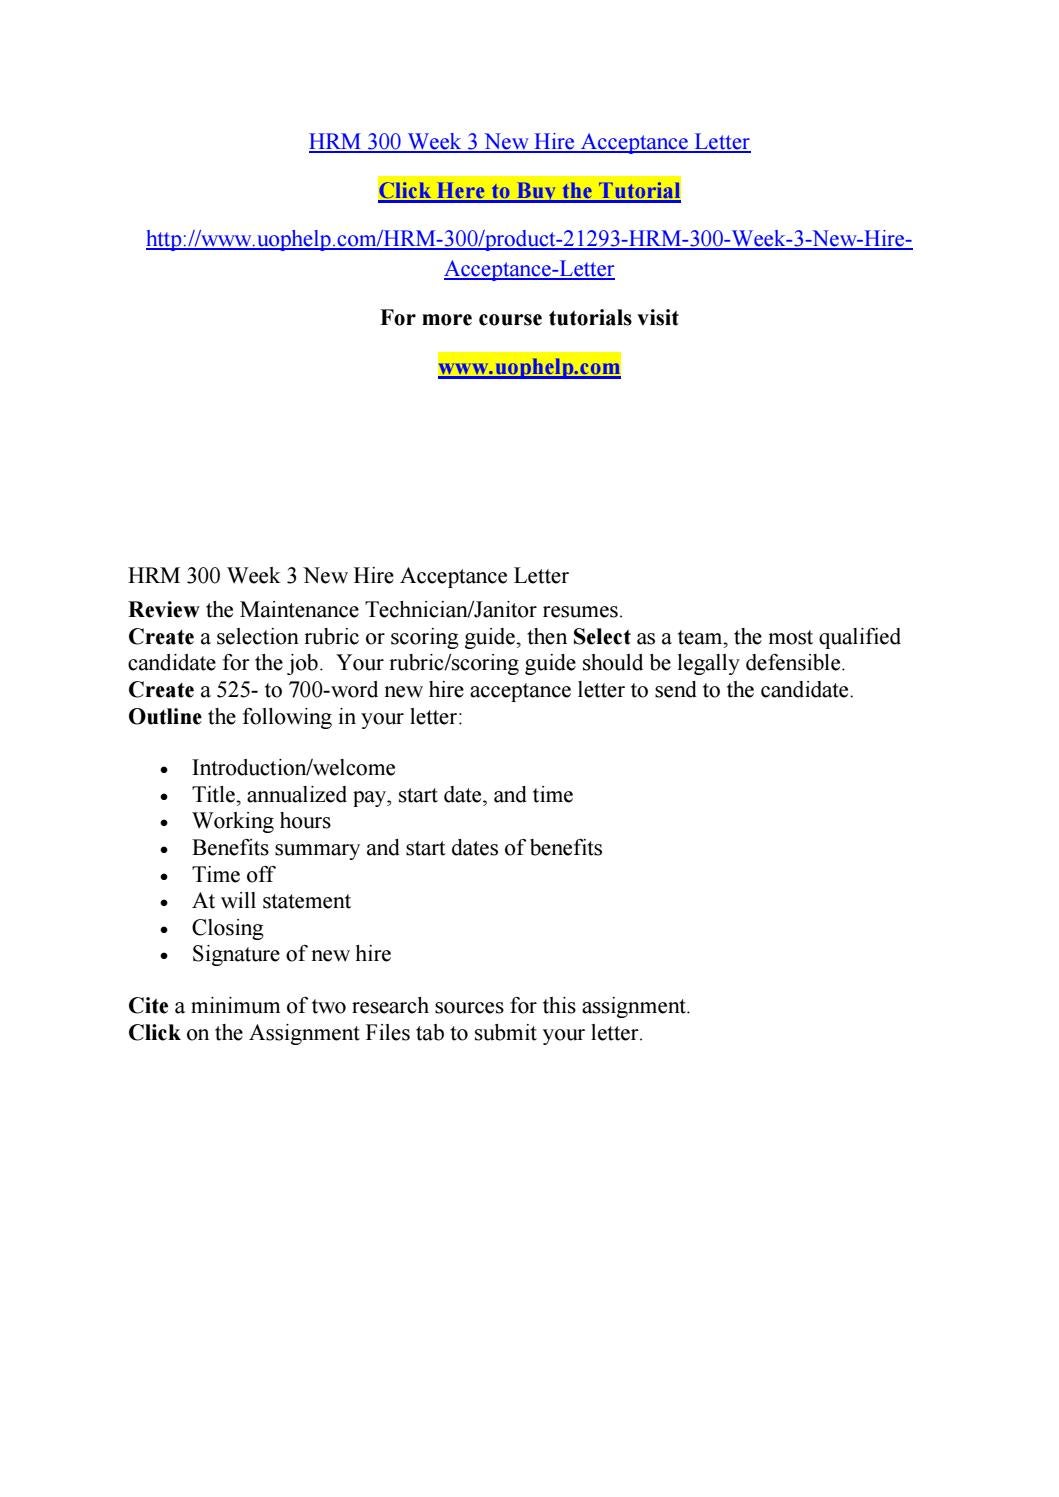 hrm 300 week 3 new hire acceptance letter by bluebell795